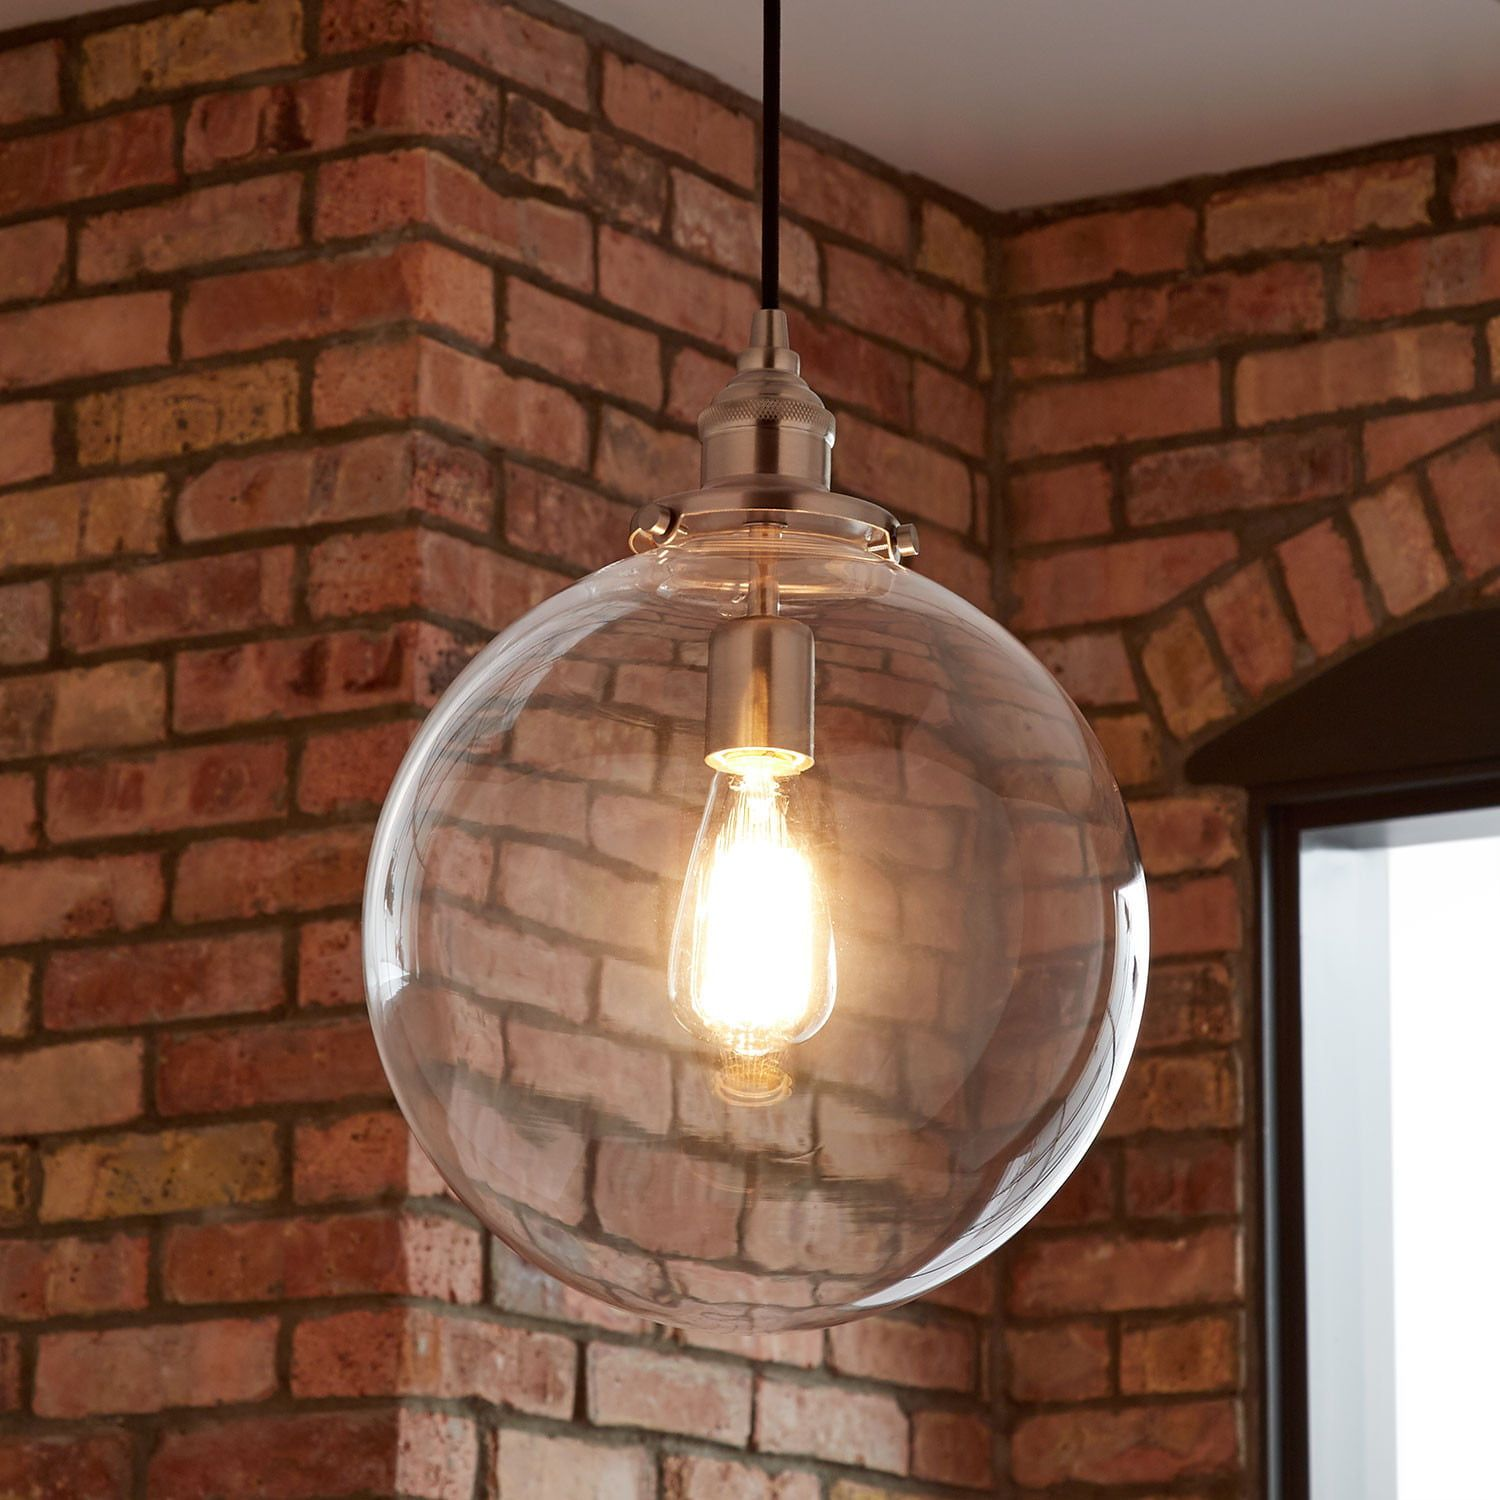 Orchard Pendant Light In Single Light In Polished Nickel In Clear